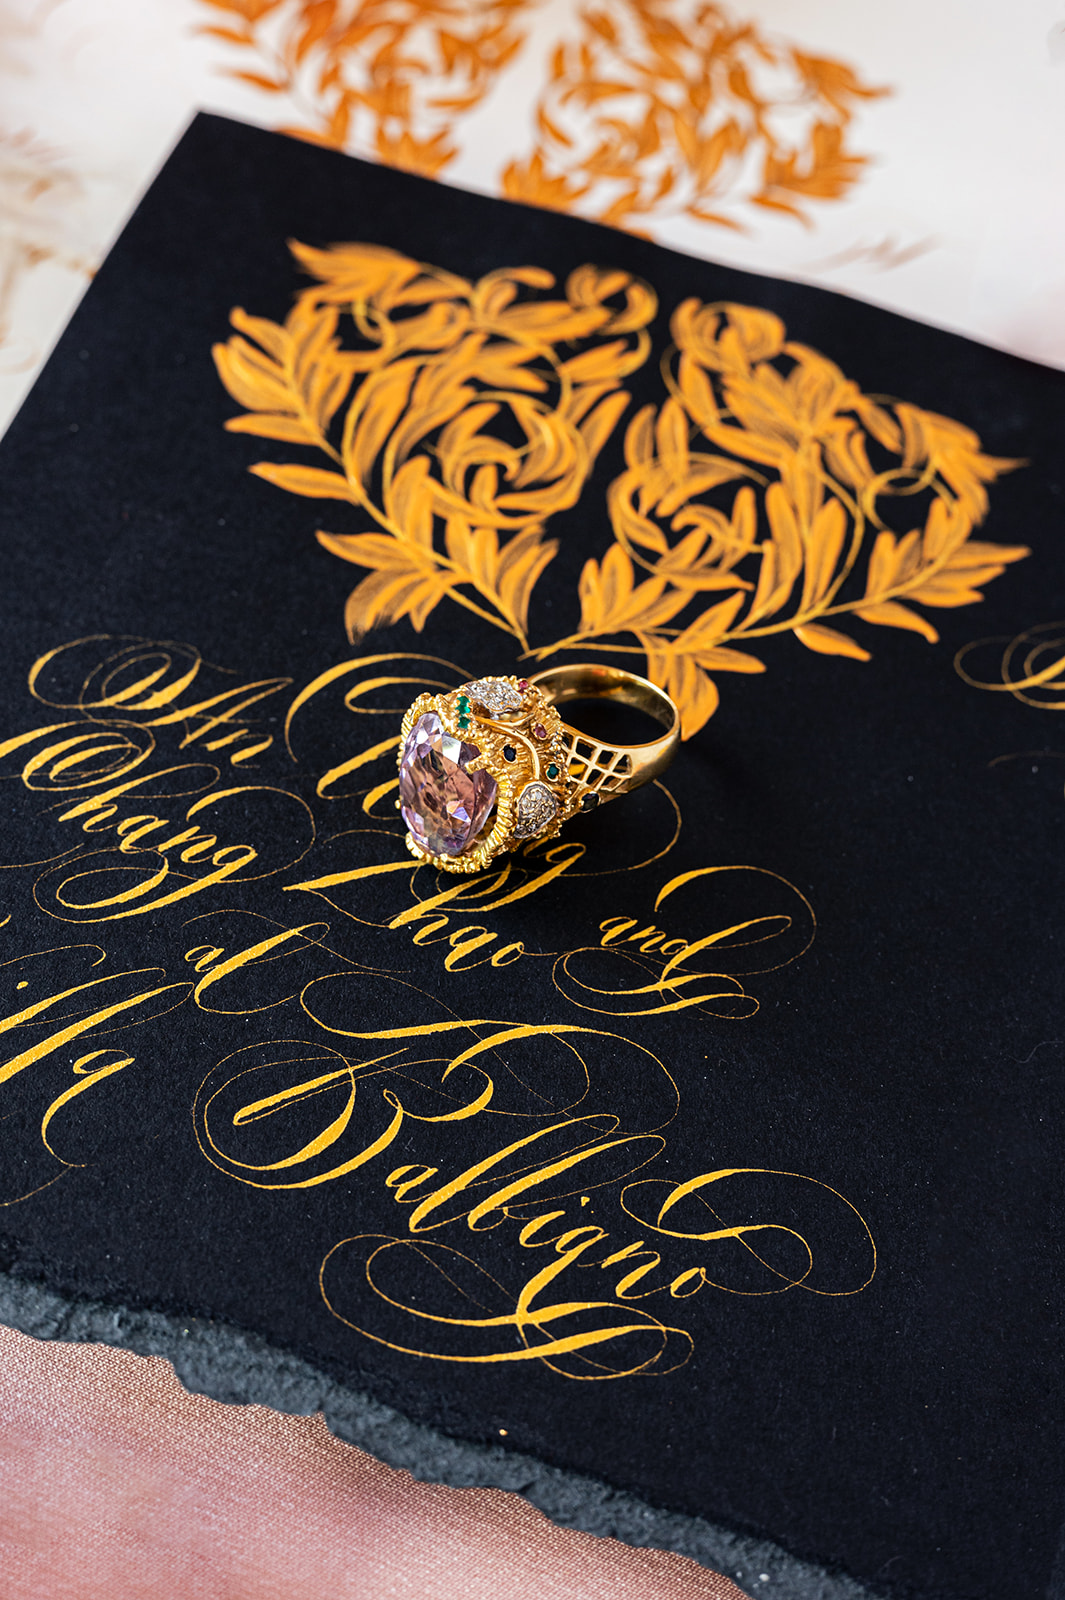 Luxury black and gold Villa Balbiano wedding stationery featuring a hand painted crest design